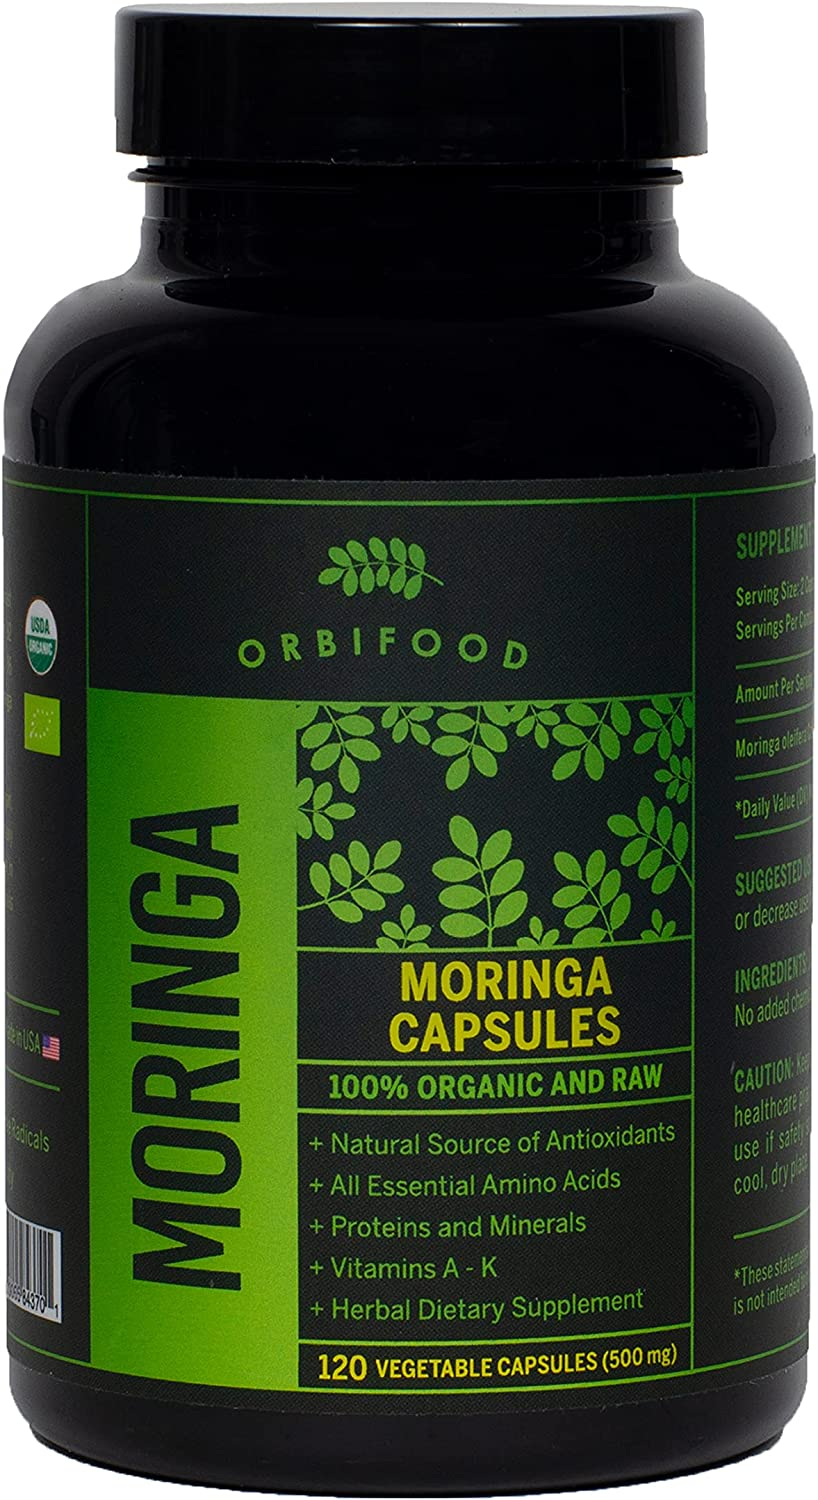 Organic Moringa Capsules – 120 Vegi Capsules – Made in USA - 100% Certified & Raw – Nutrient Dense, Complete Green Superfood Herbal Supplement - Packed with All Antioxidants, Amino Acids, Vitamin A-K